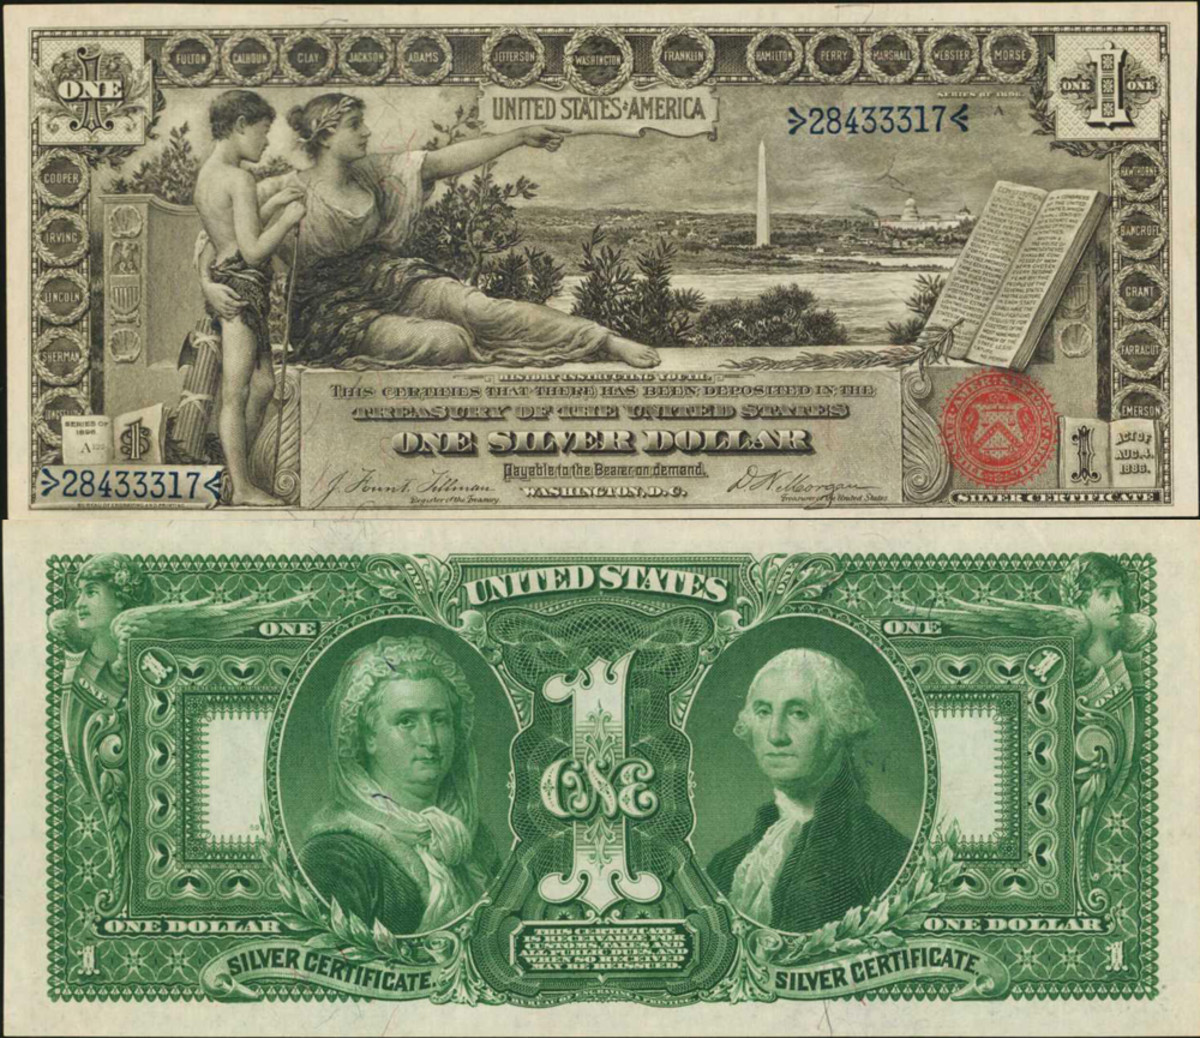 An 1896 $1 Silver Certificate, graded PMG Choice Uncirculated 64 EPQ. This note was estimated at $2,000-$3,000 and sold for $4,080, well above the estimated price. The front design can be seen with stunning detail, including names of important Americans lining the border, and a red seal in the bottom right.